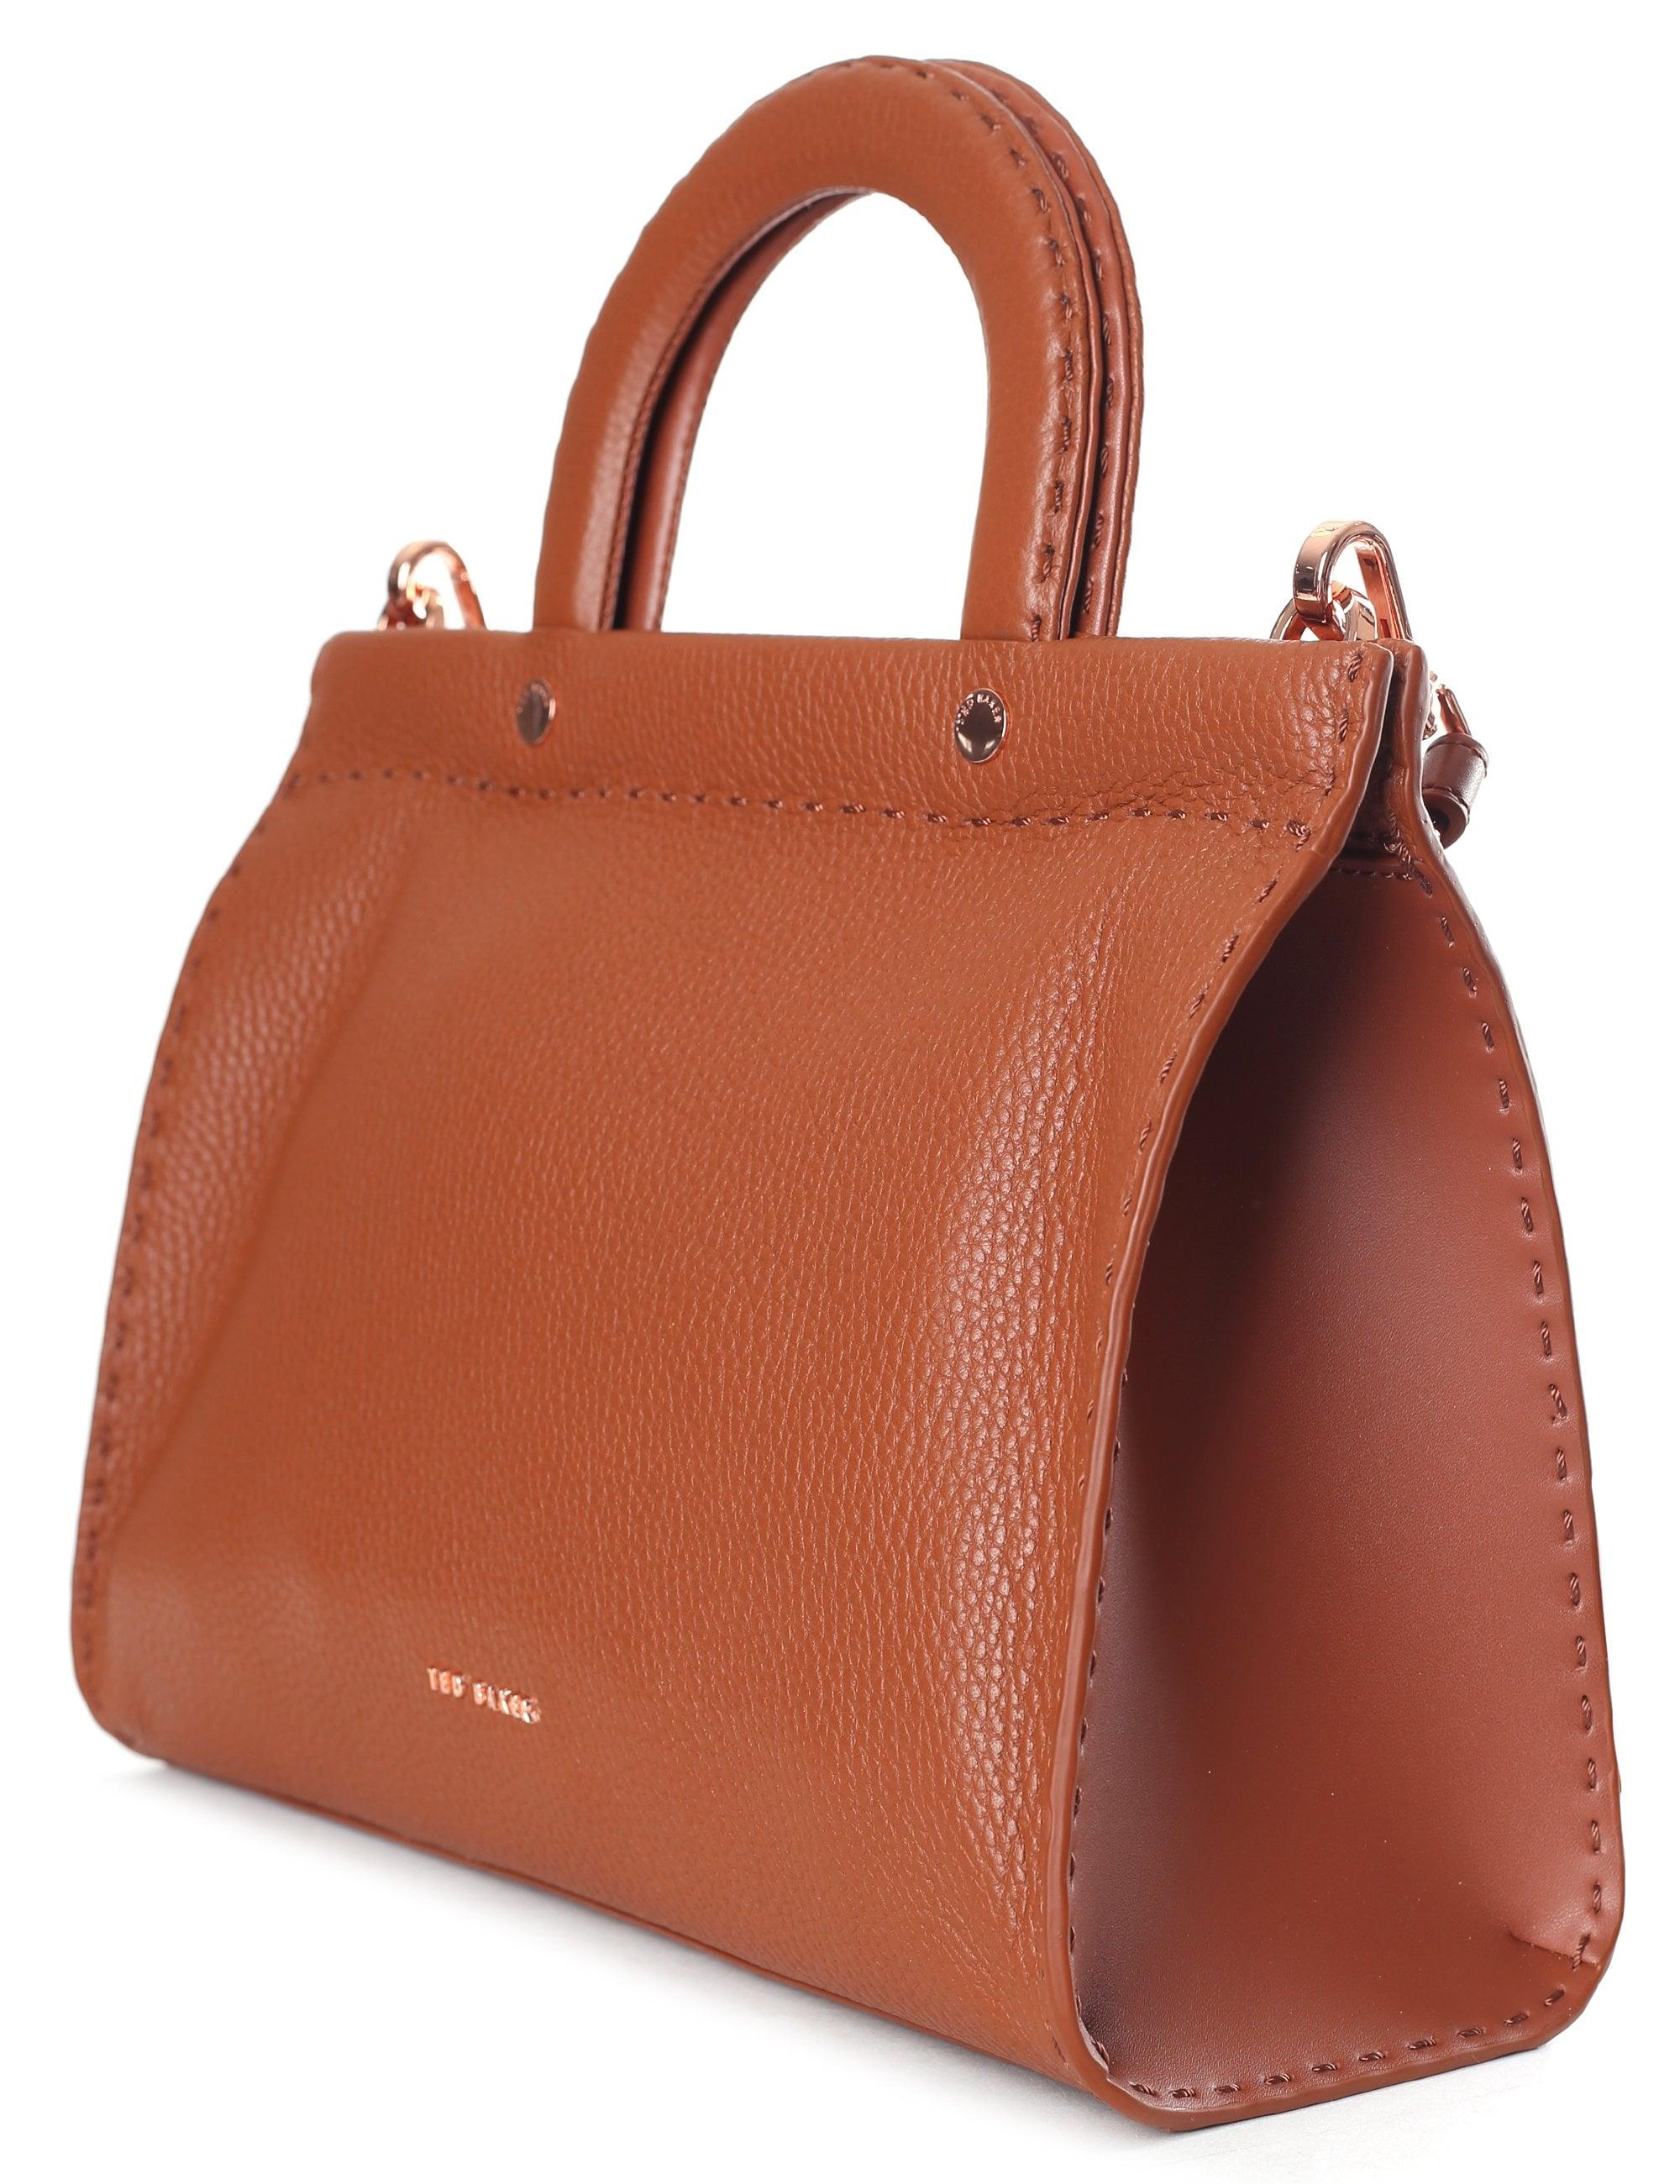 54edaf72c915 Ted Baker Women s Stab Stitch Midi Tote in Brown - Lyst